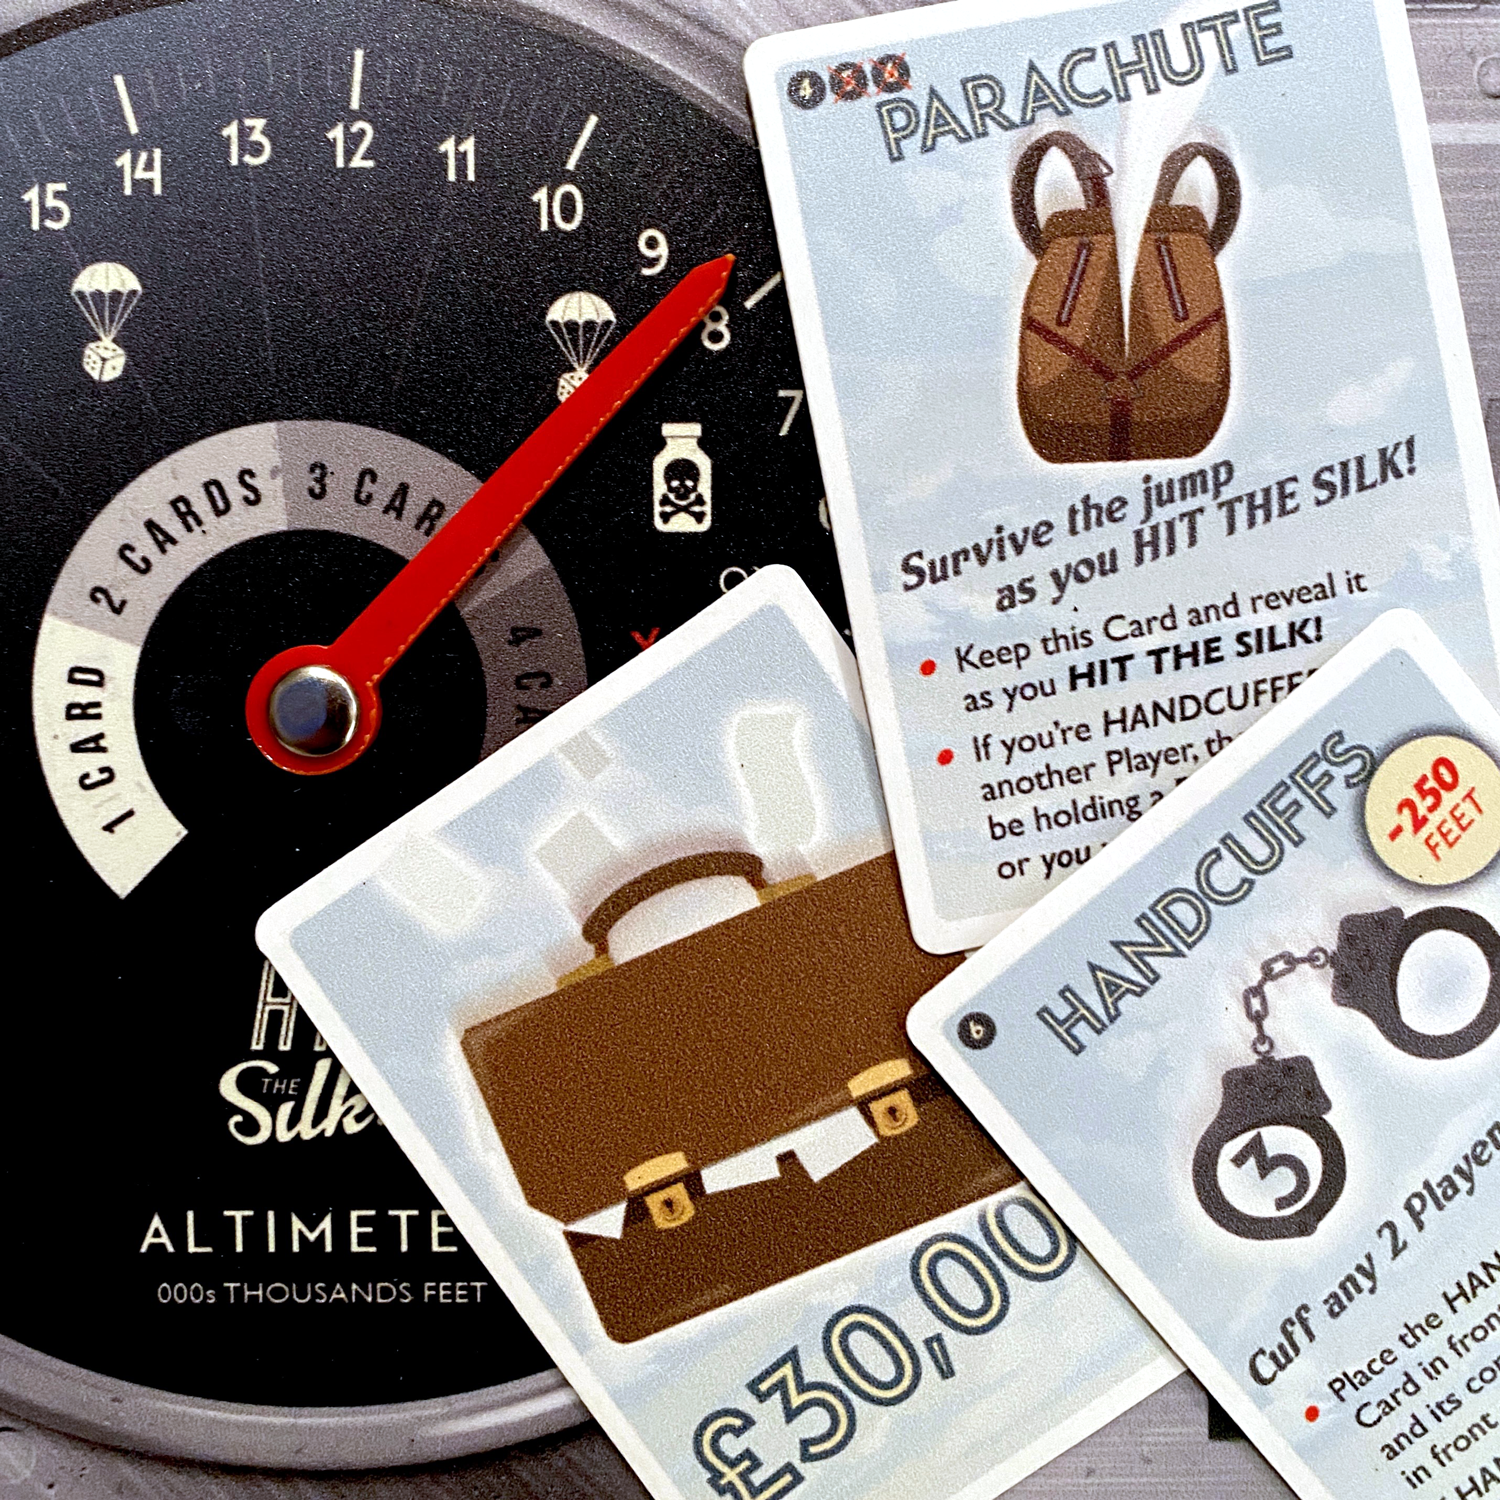 Would You Hit the Silk with these cards? Image © Board Game Review UK